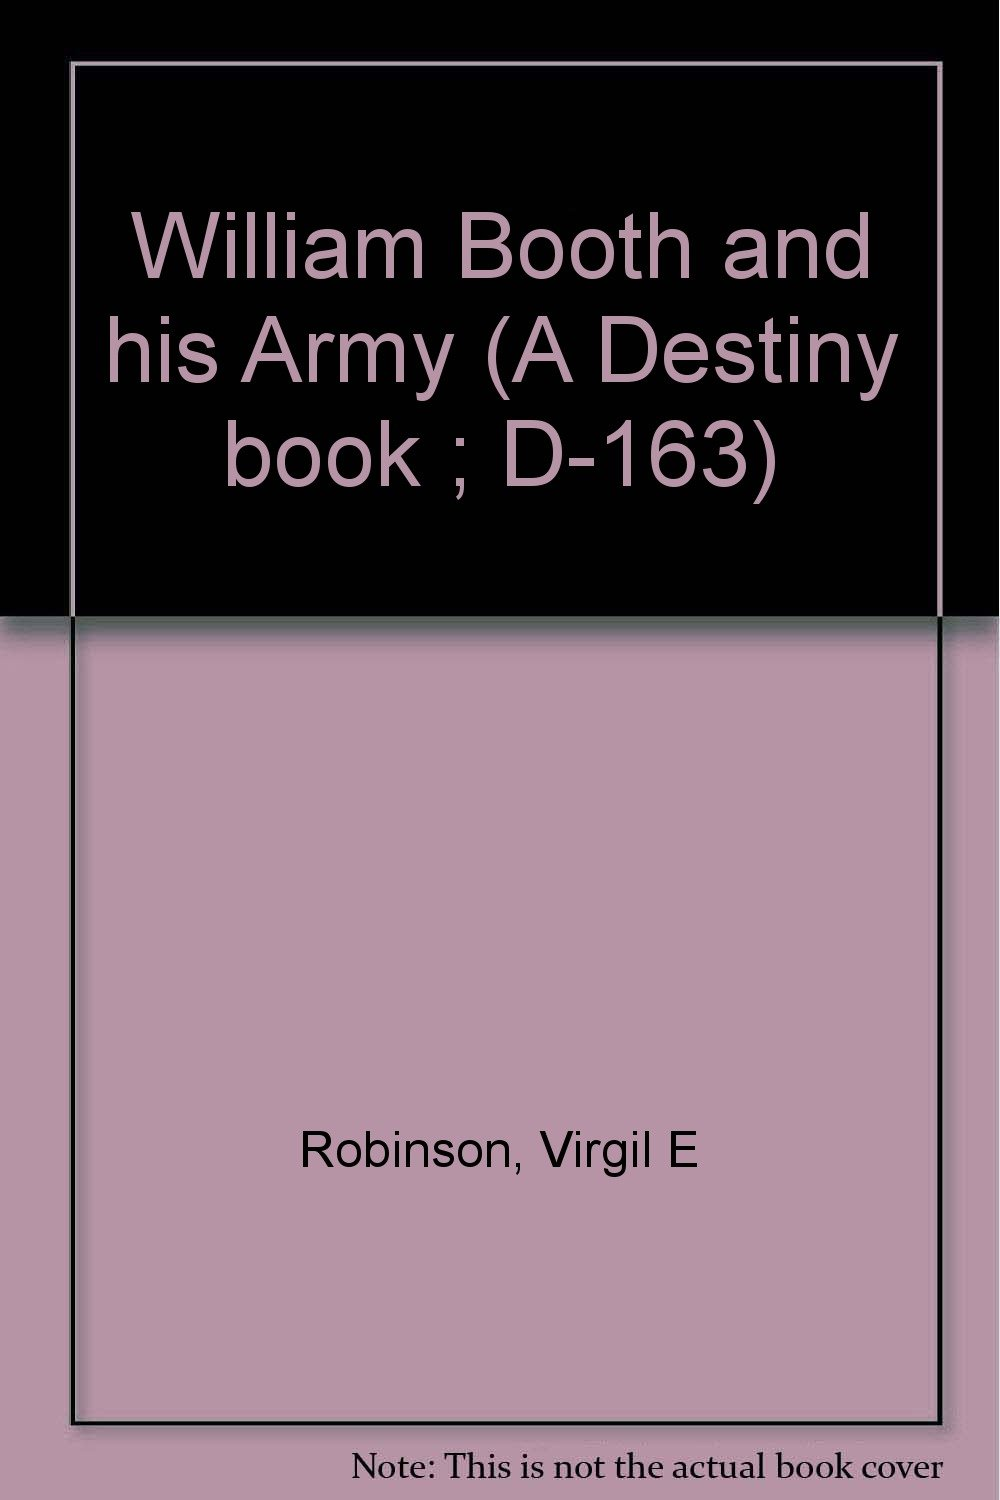 William Booth and his Army (A Destiny book